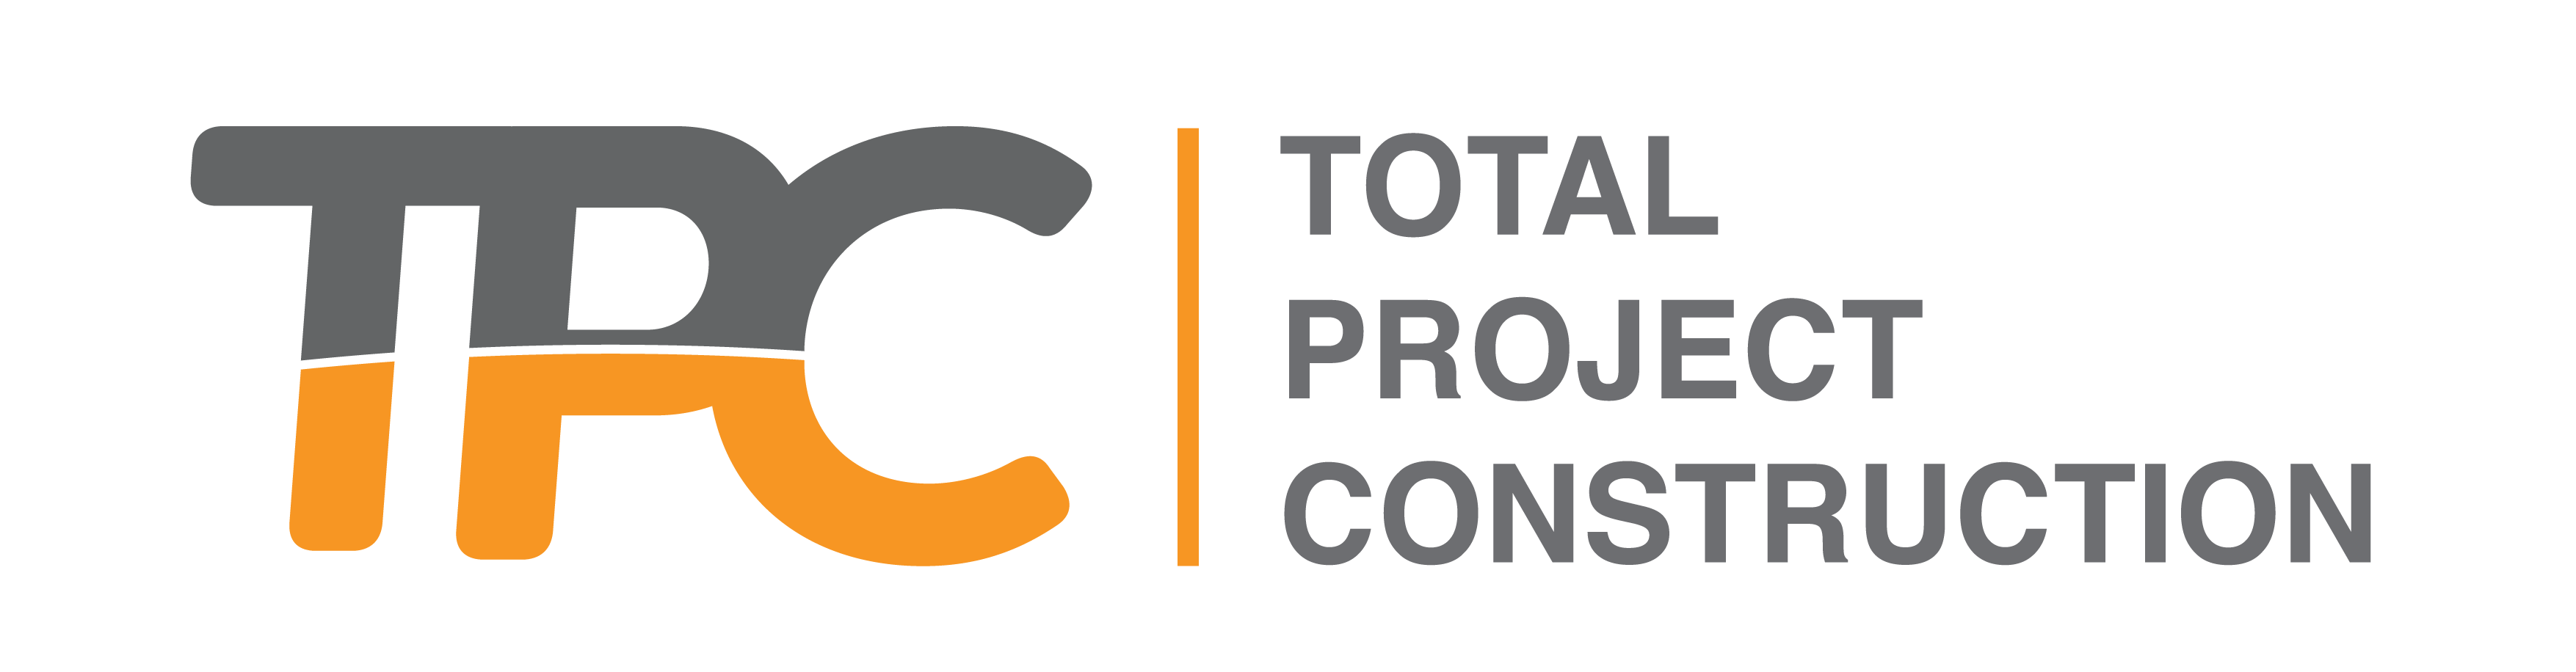 Total Project Construction